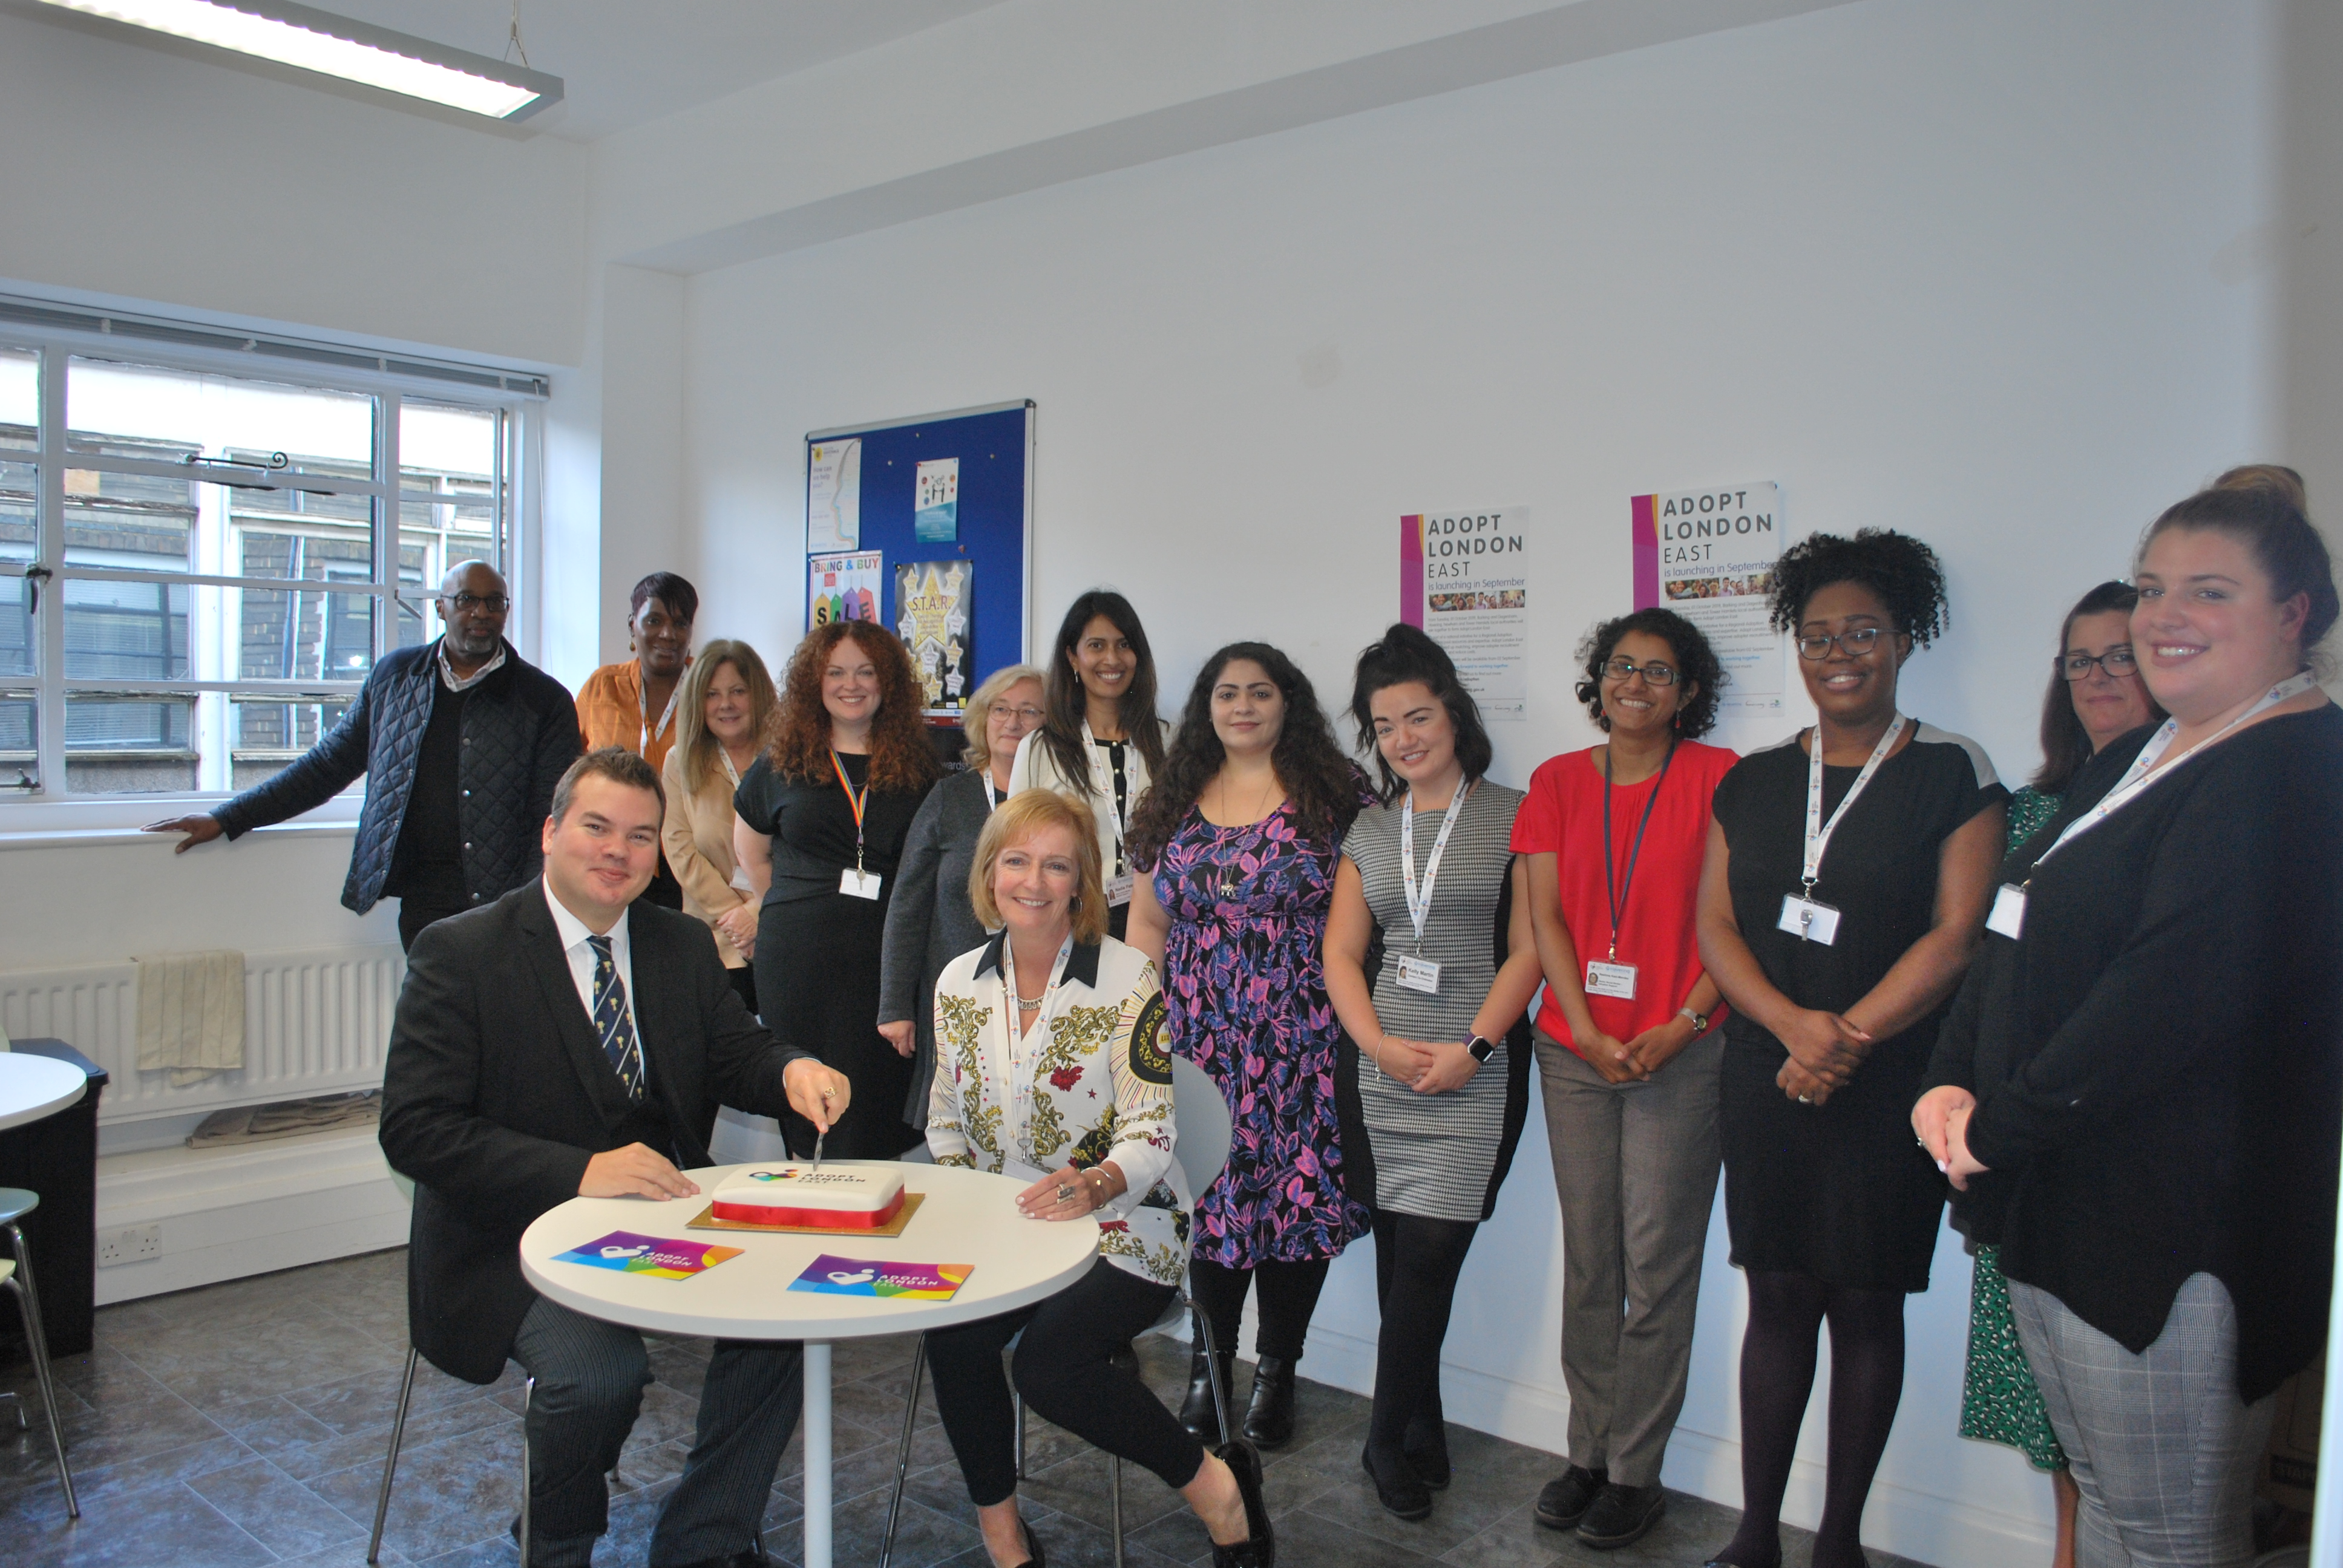 New adoption team arrives in Havering